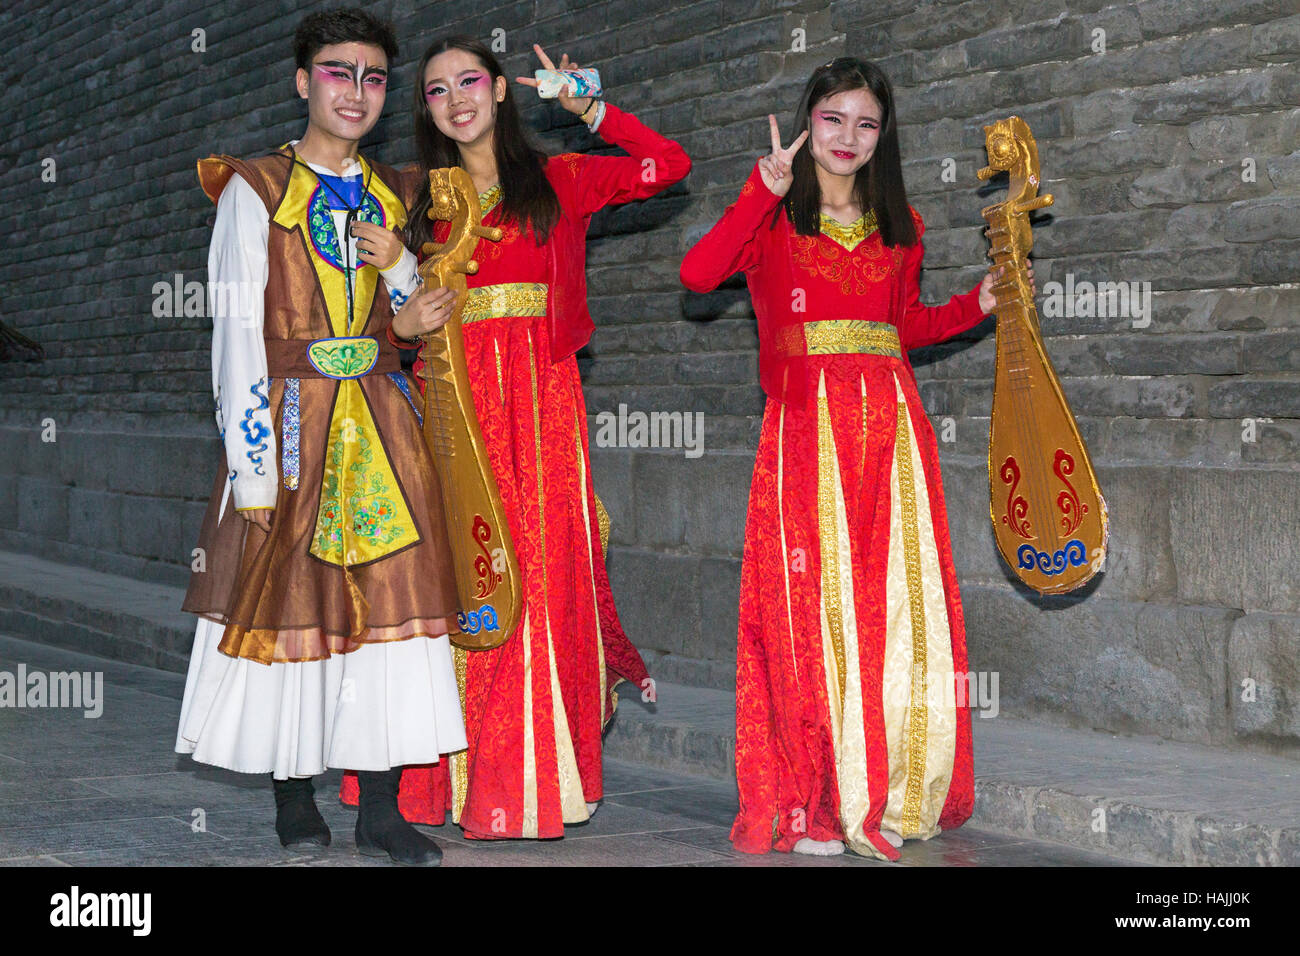 Performers at Chinese cultural show, Xian, China - Stock Image